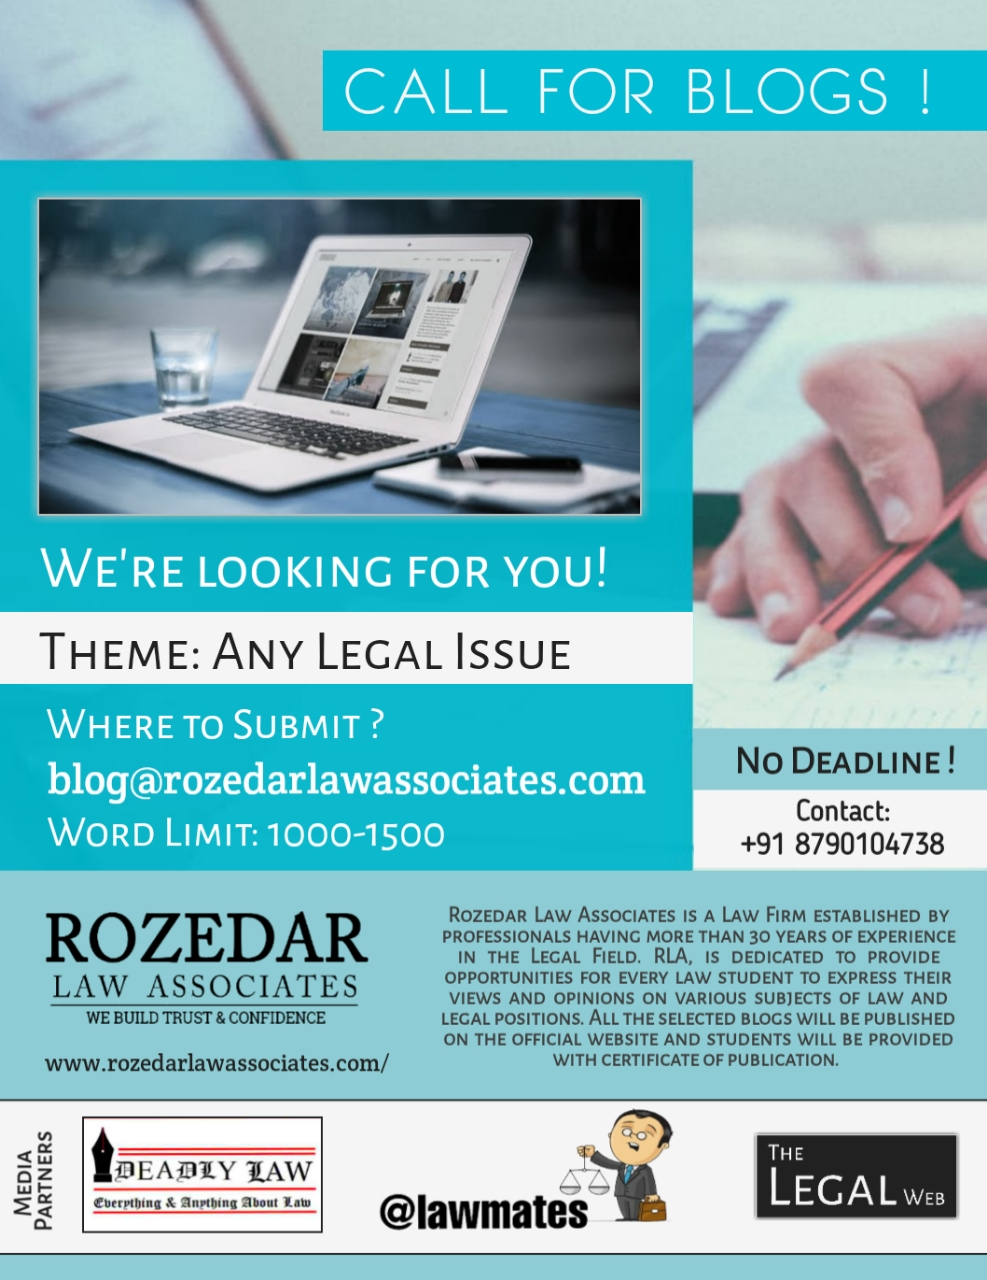 Call for Blogs: Rozedar Law Associates: Rolling Submissions : No Deadline